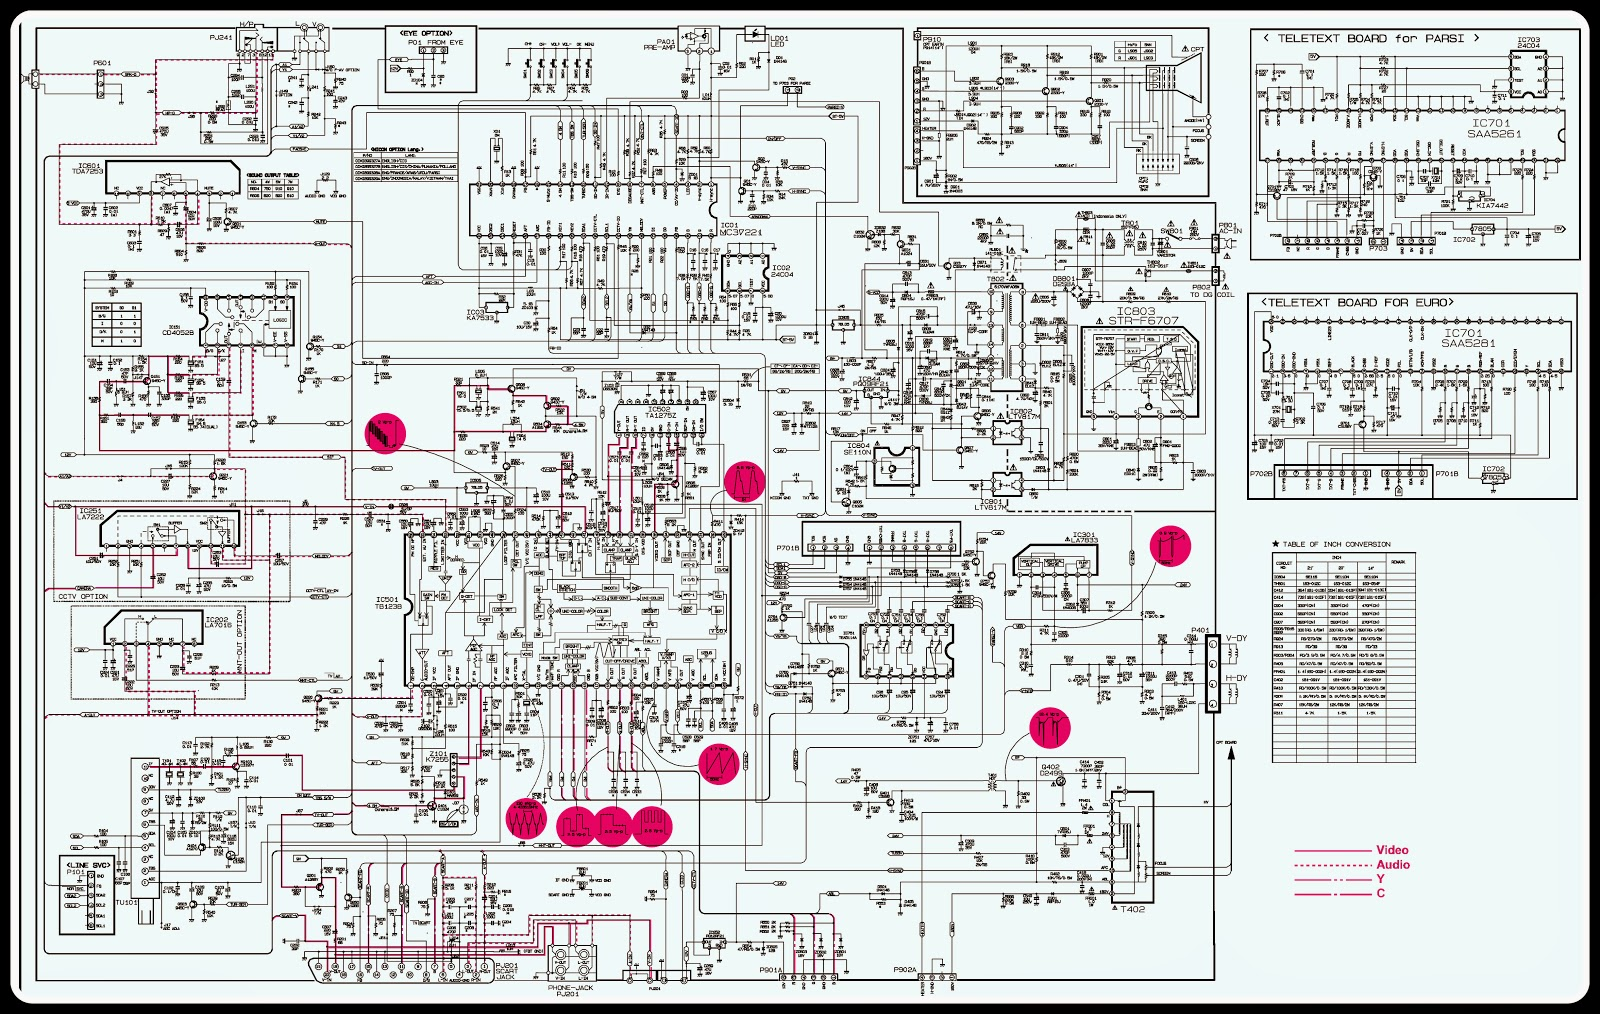 tv schematic diagrams free download wiring diagram post lg tv schematic diagrams wiring diagram post tv [ 1600 x 1014 Pixel ]